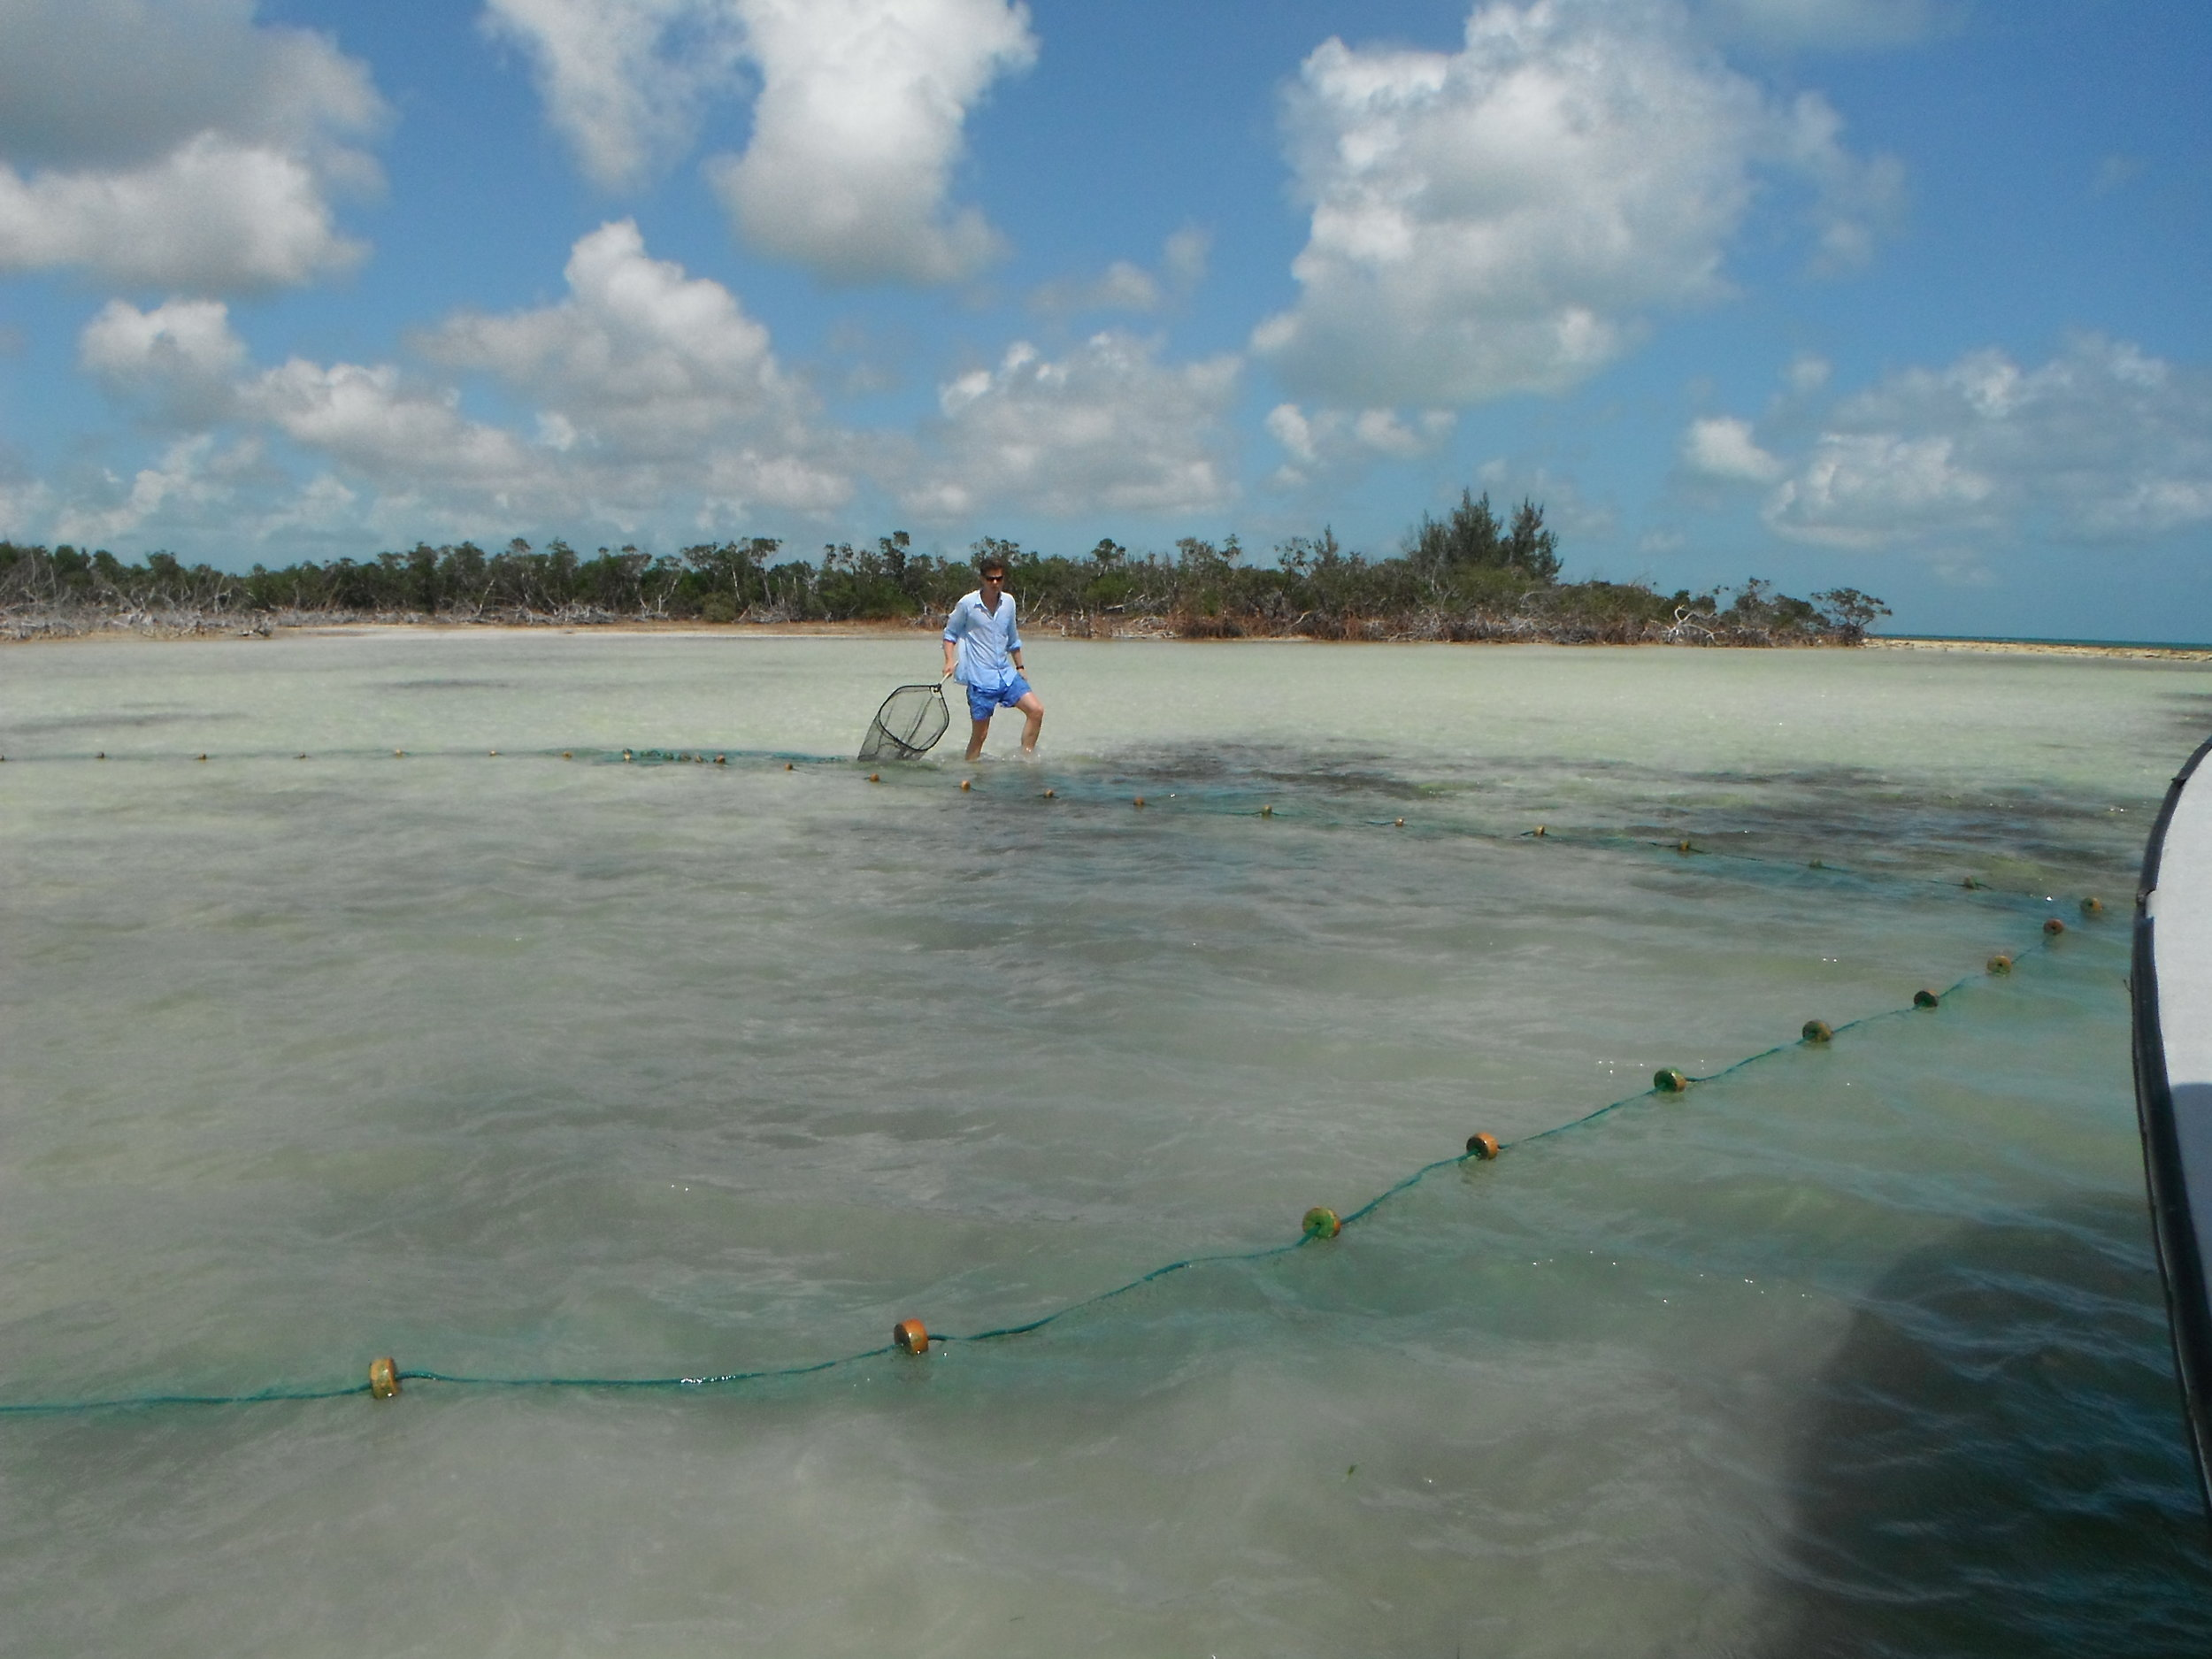 A researcher observes bonefish that have been corralled in the seine net, waiting to be tagged and released.